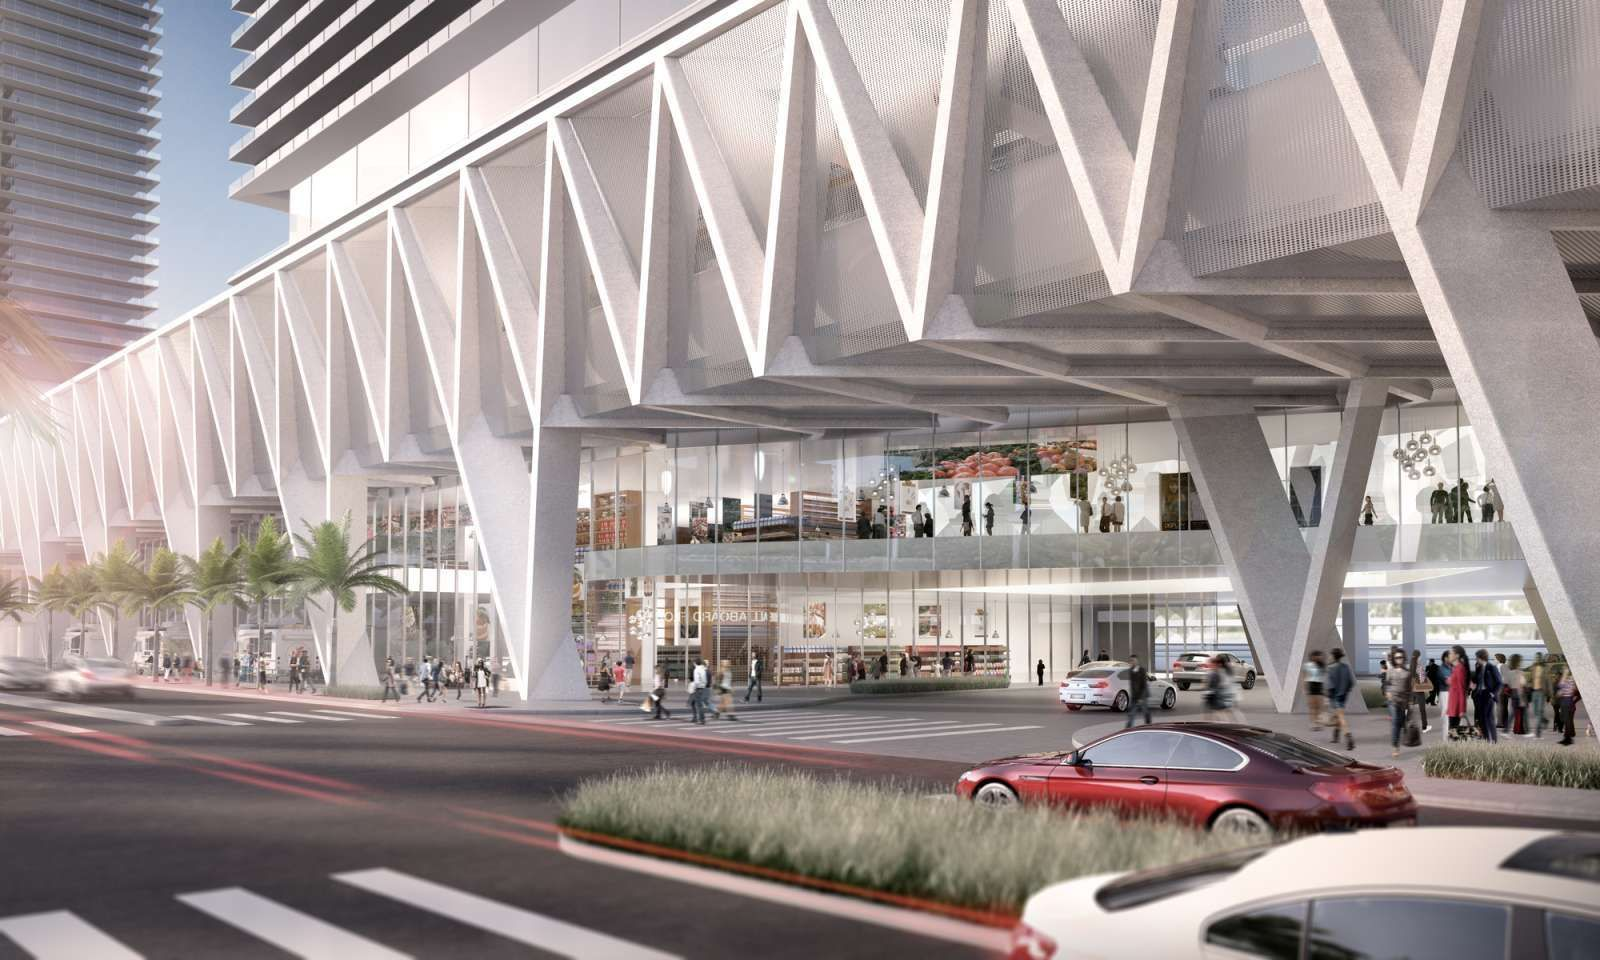 In these days, SOM revealed its design for the Miami hub of All Aboard Florida's passenger rail line. The terminal will be one of three that connects more